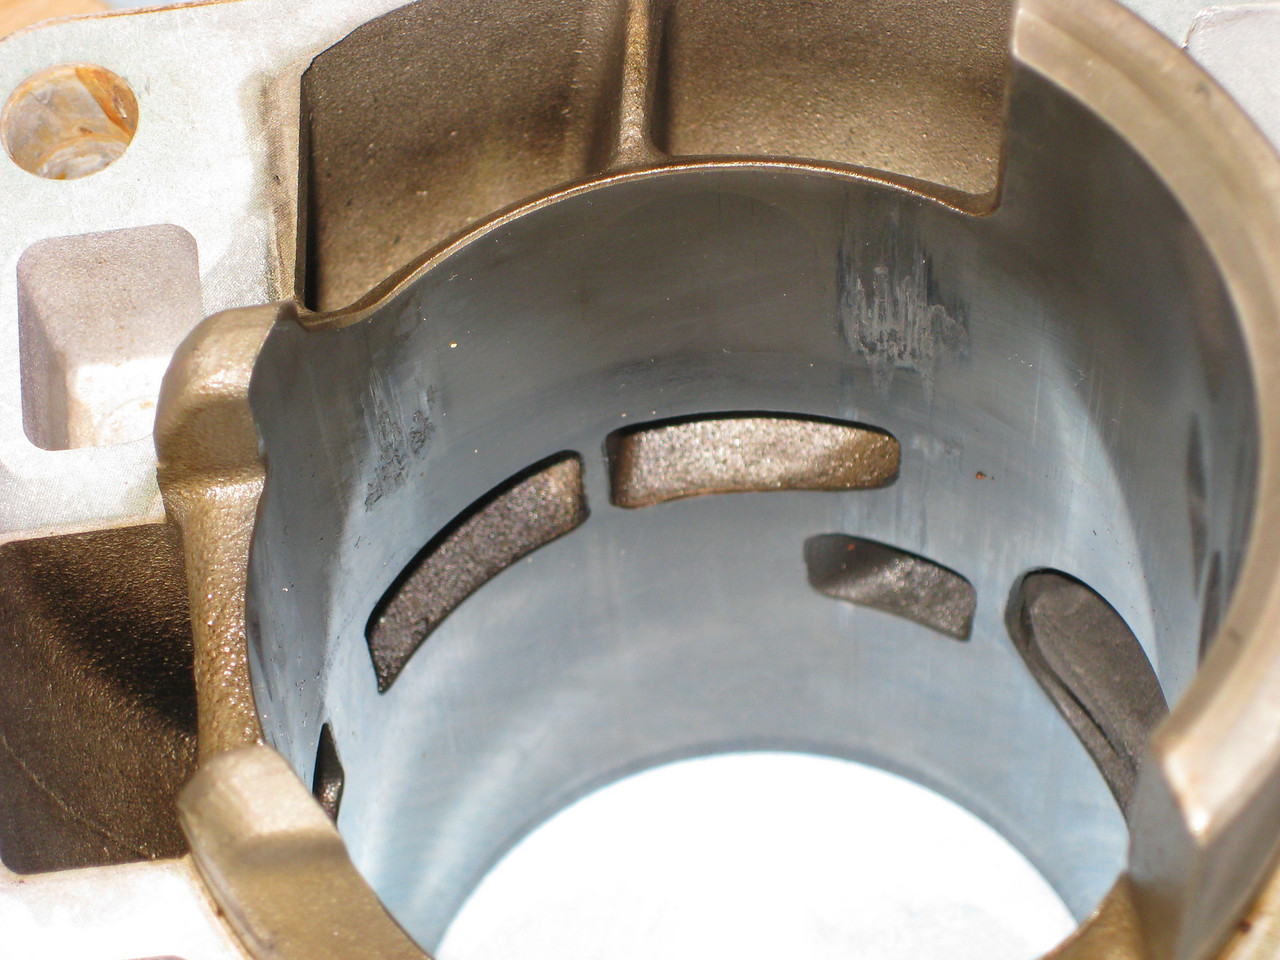 Two of the crunched areas at the bottom of the cylinder